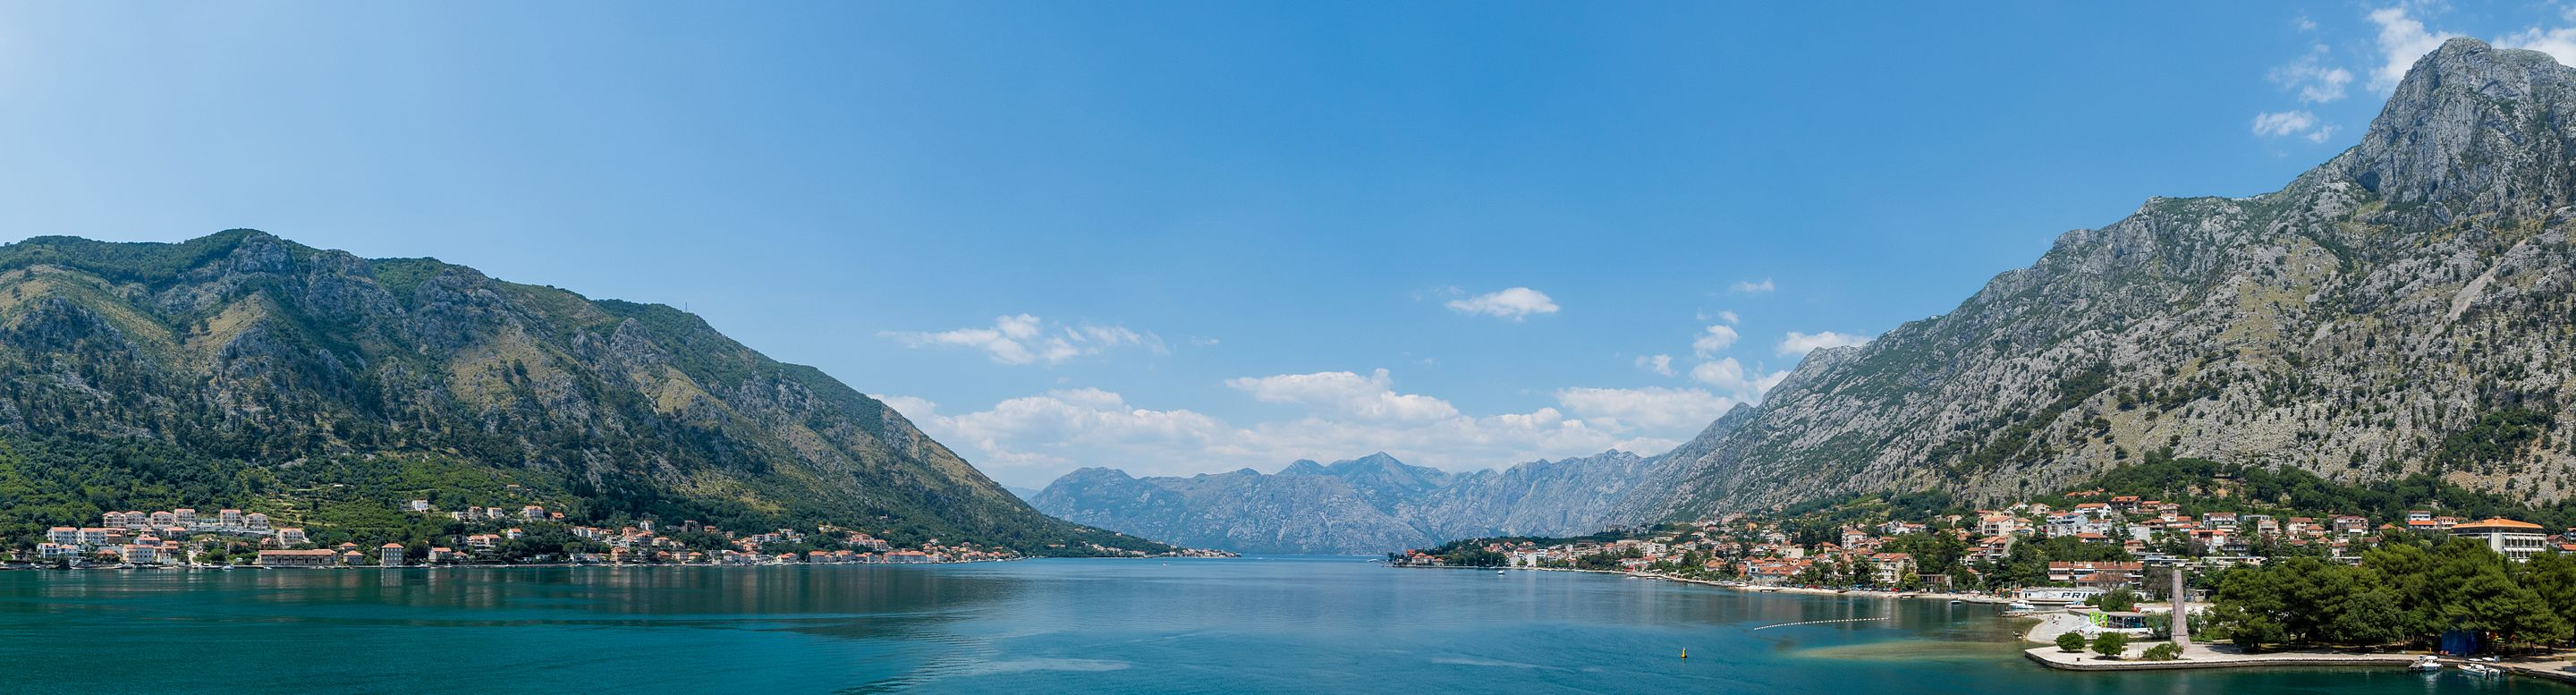 2880px-Bay_of_Kotor_Panorama.jpg